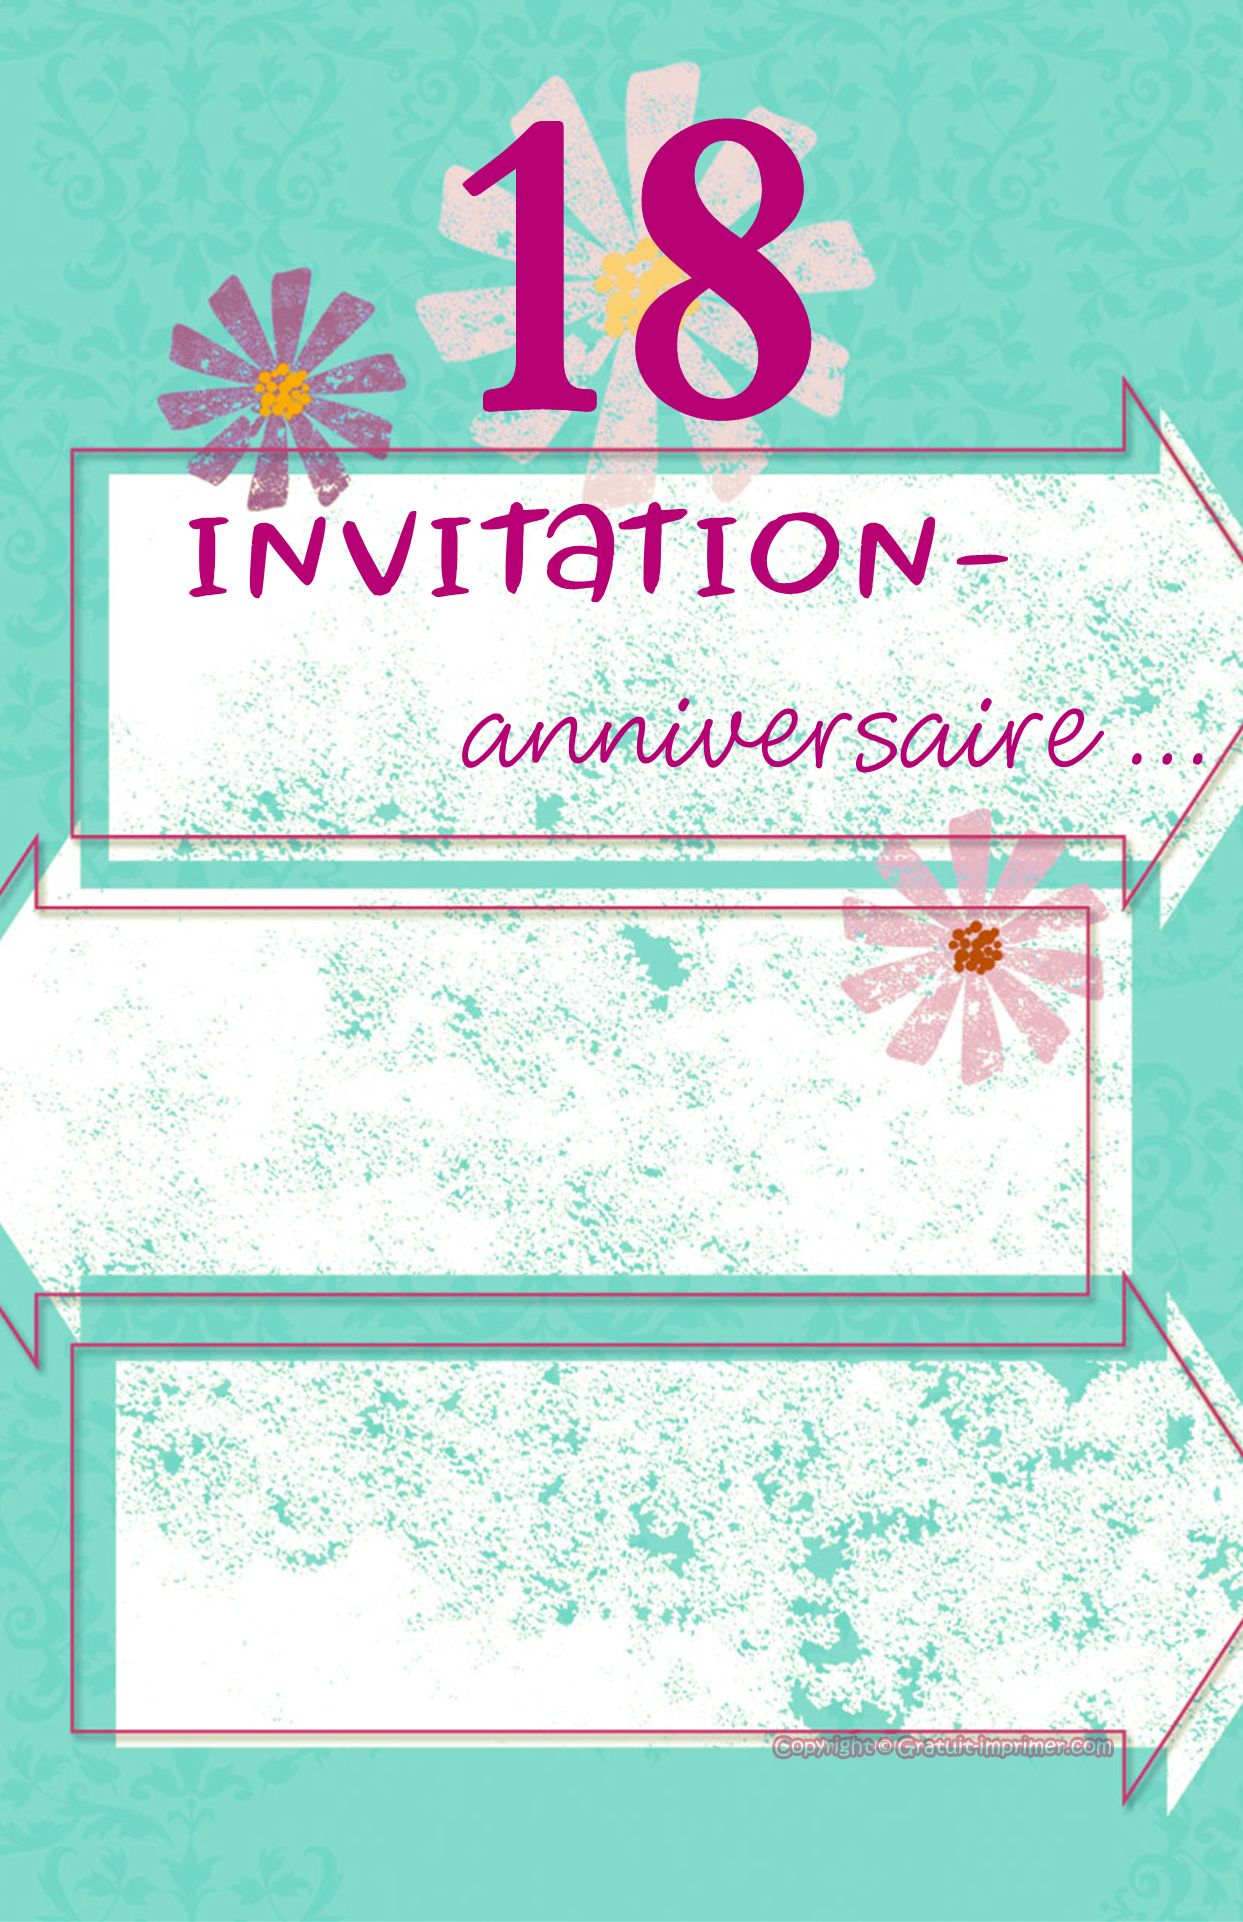 carte invitation anniversaire de 18 ans gratuite a imprimer pour fille saisons et jours de. Black Bedroom Furniture Sets. Home Design Ideas